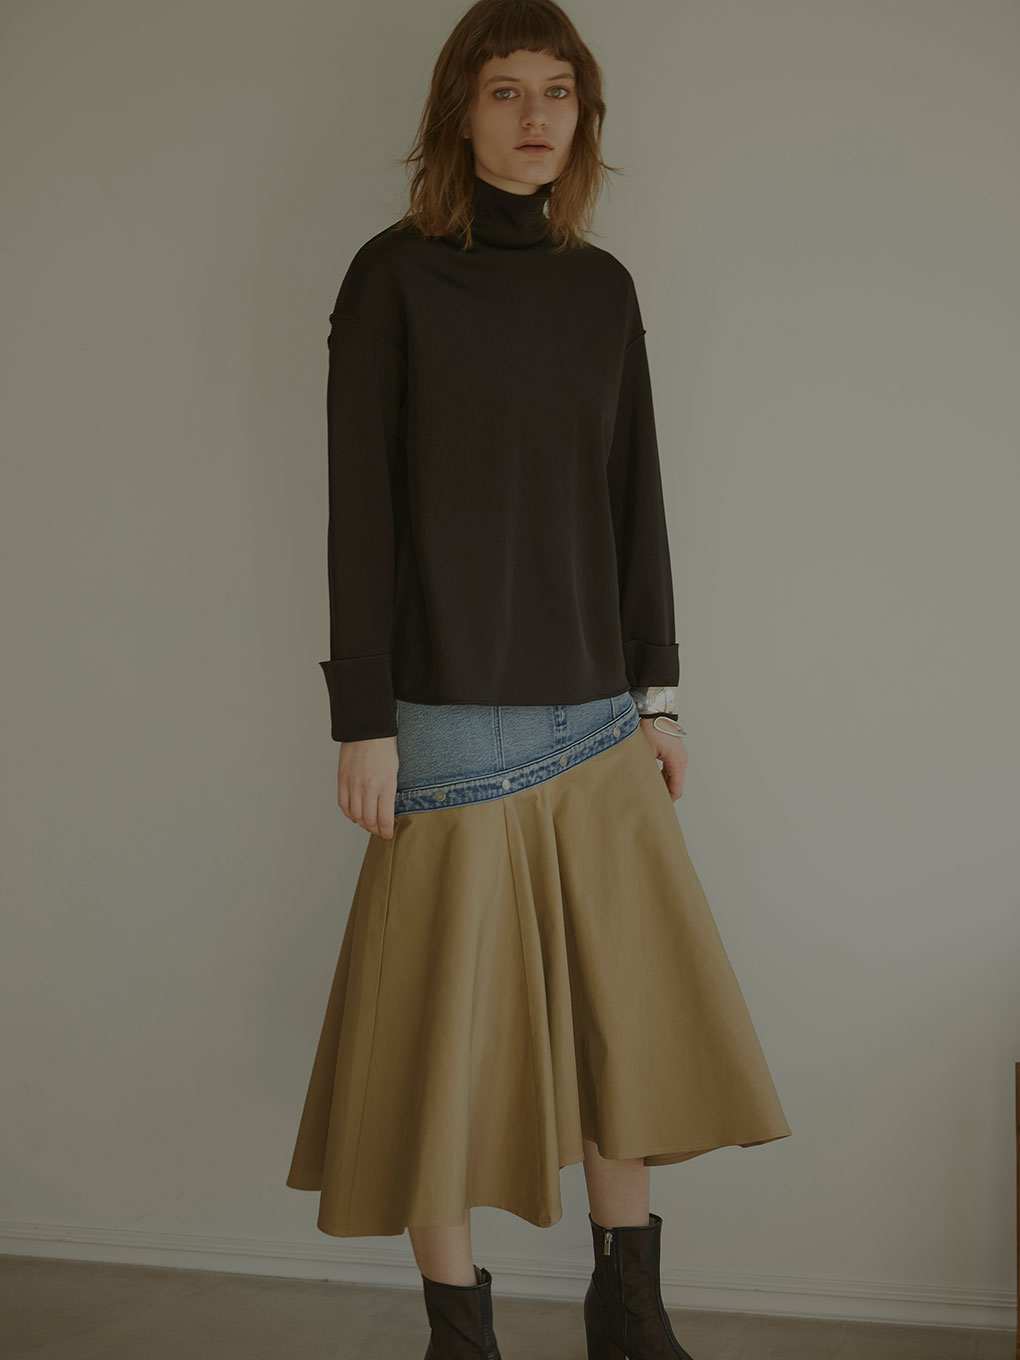 FLOWING LINE DENIM SKIRT